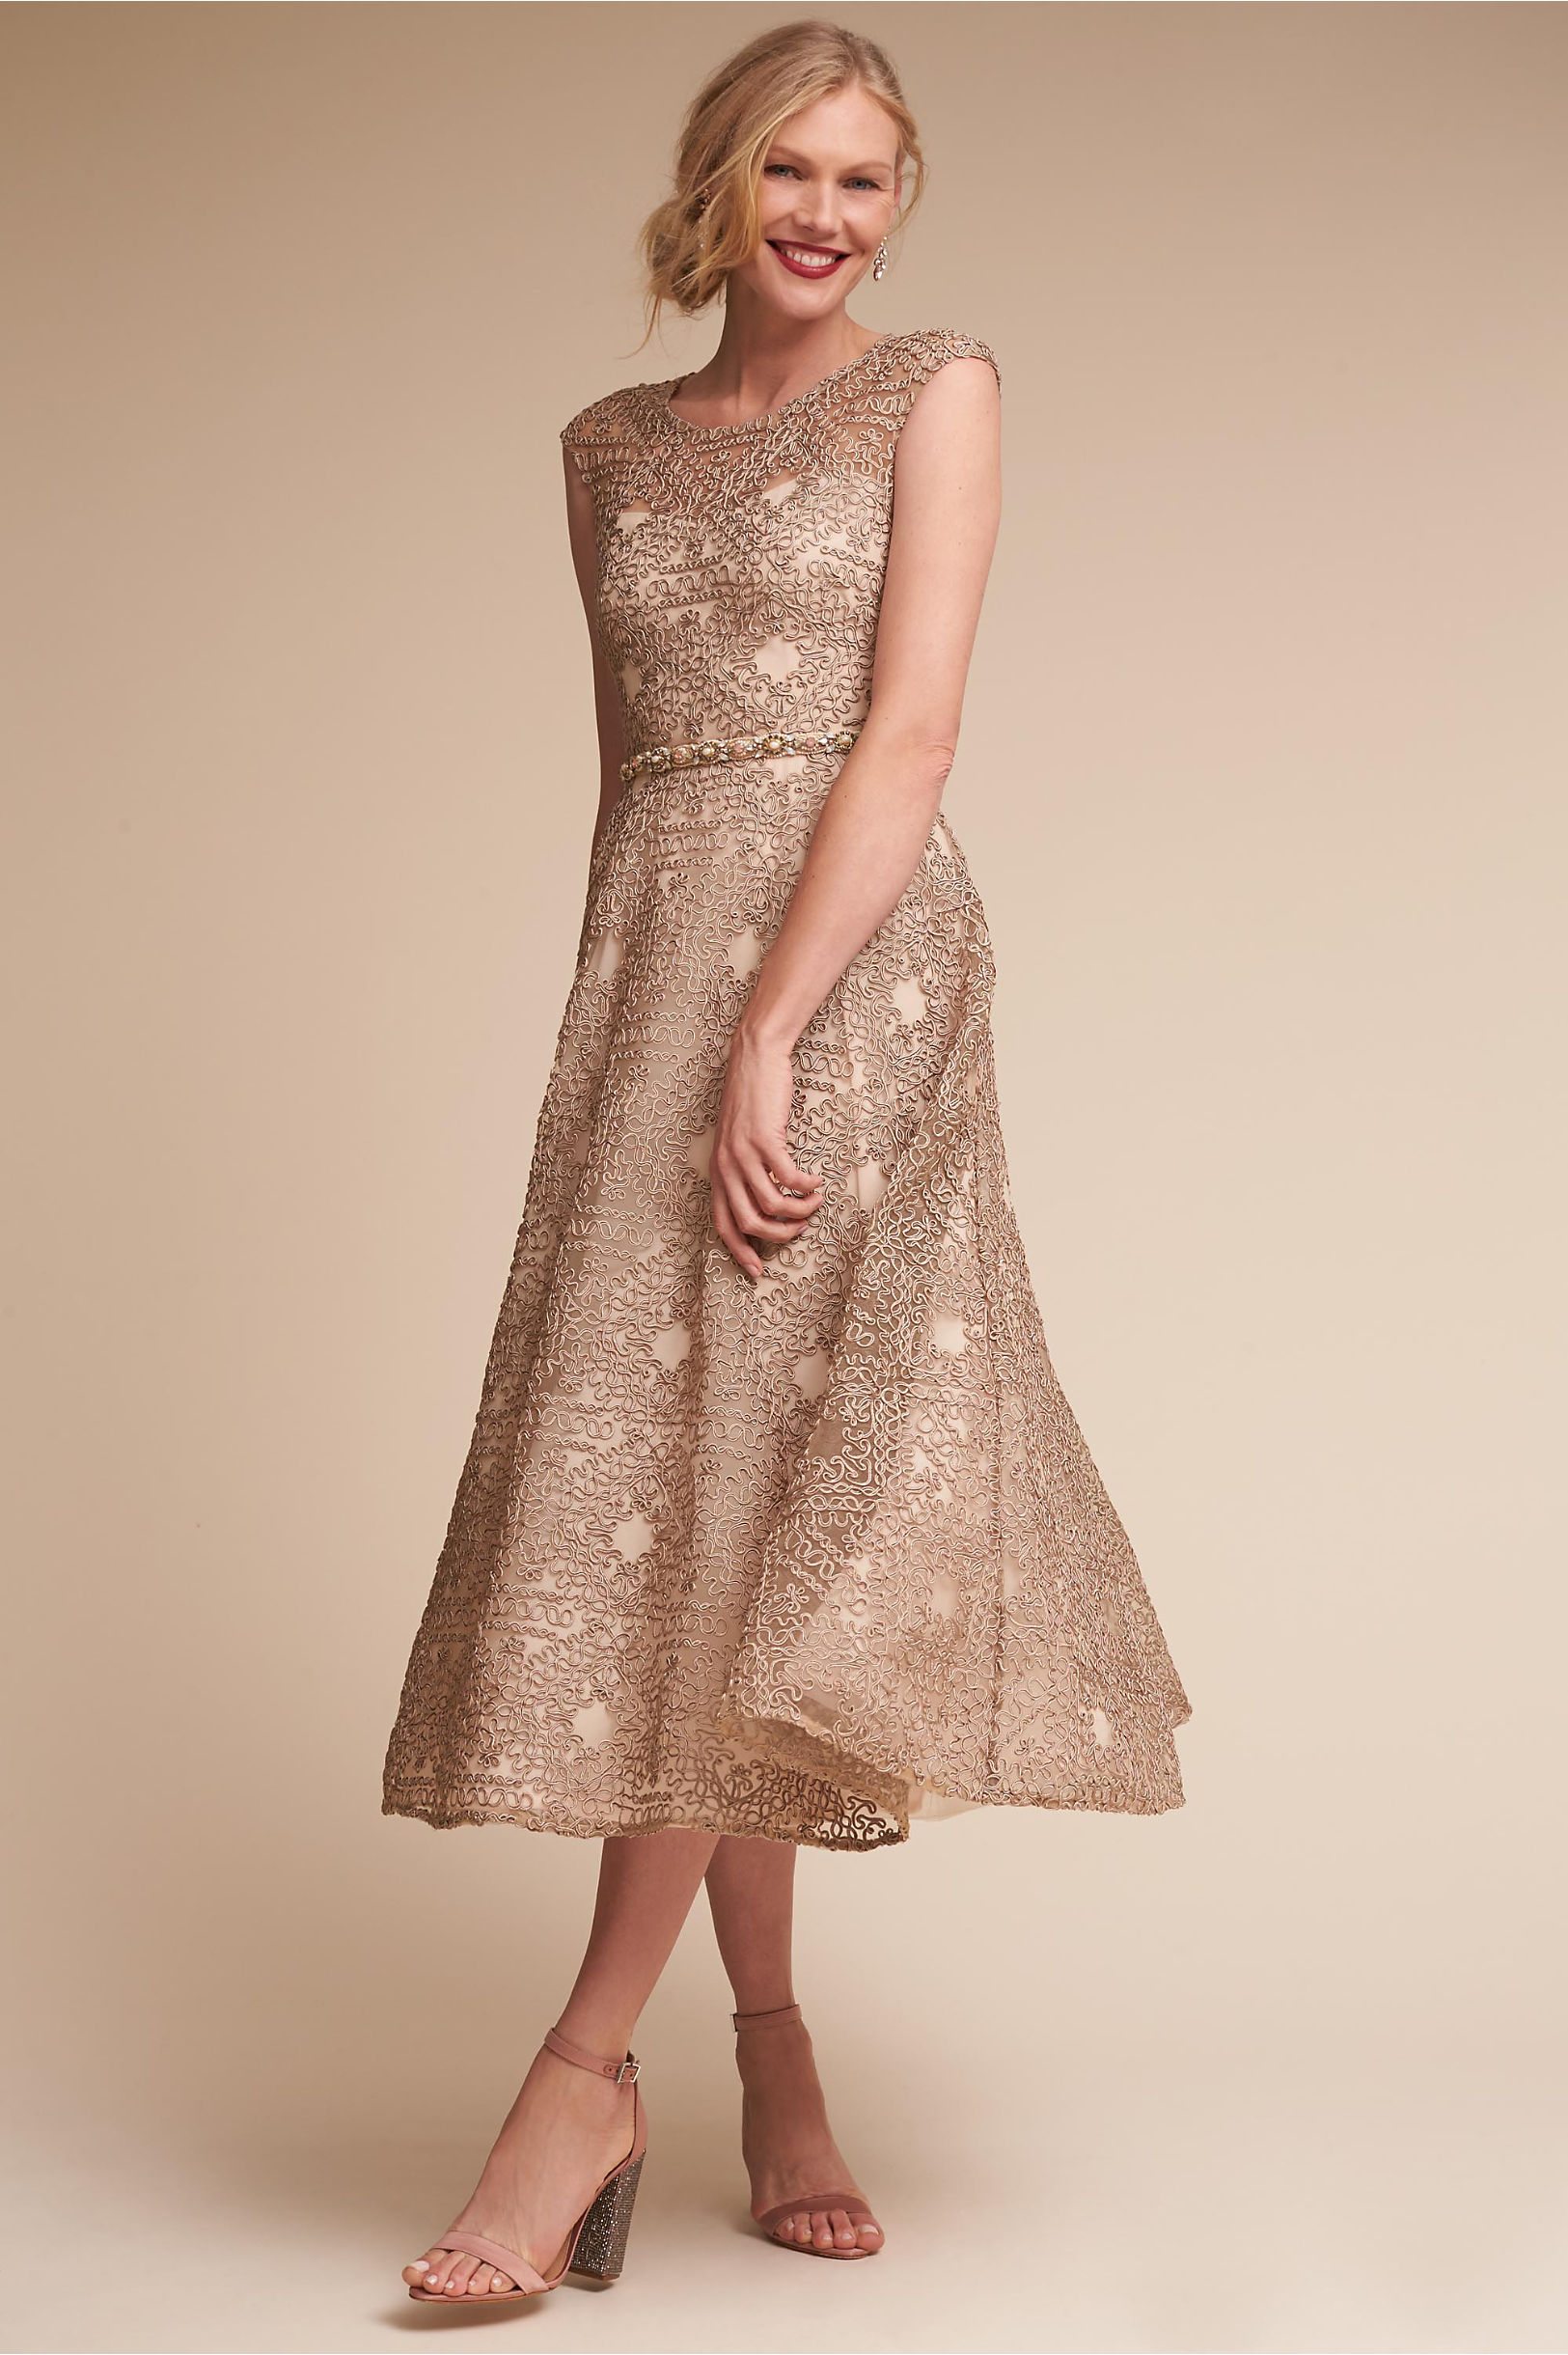 Presley Dress Champagne in Bridesmaids & Bridal Party | BHLDN